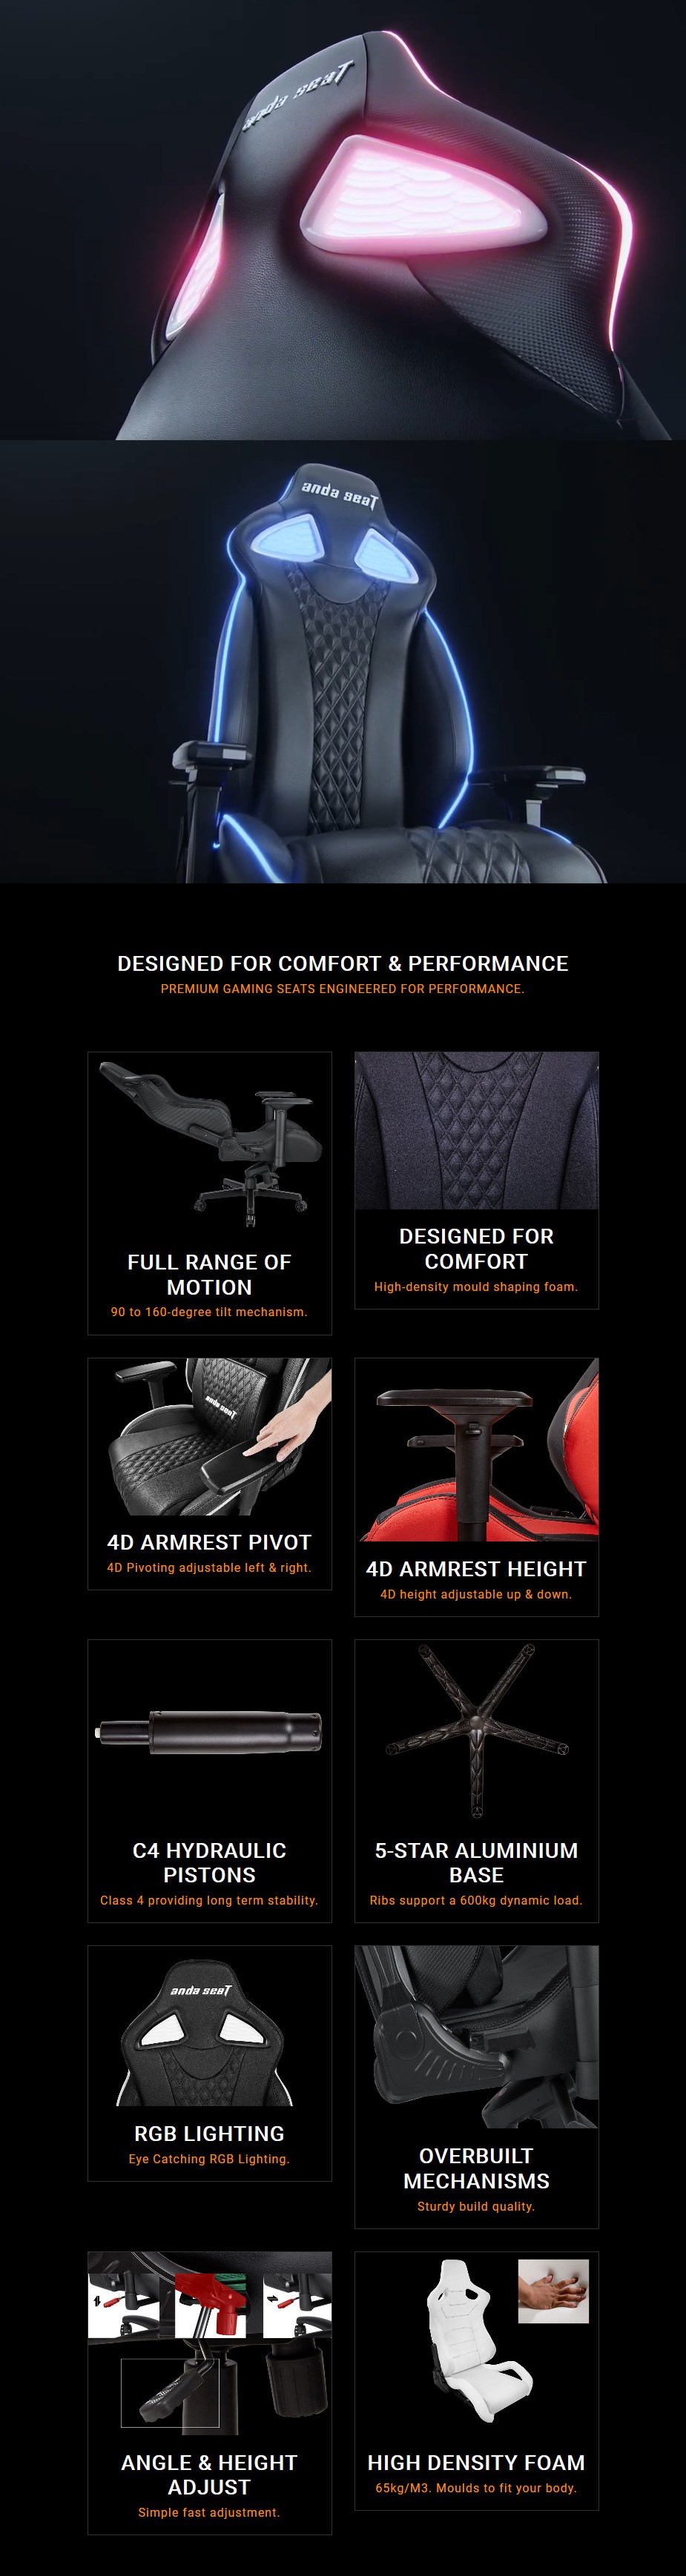 Anda Seat AD17 Special Edition RGB Gaming Chair - Overview 1